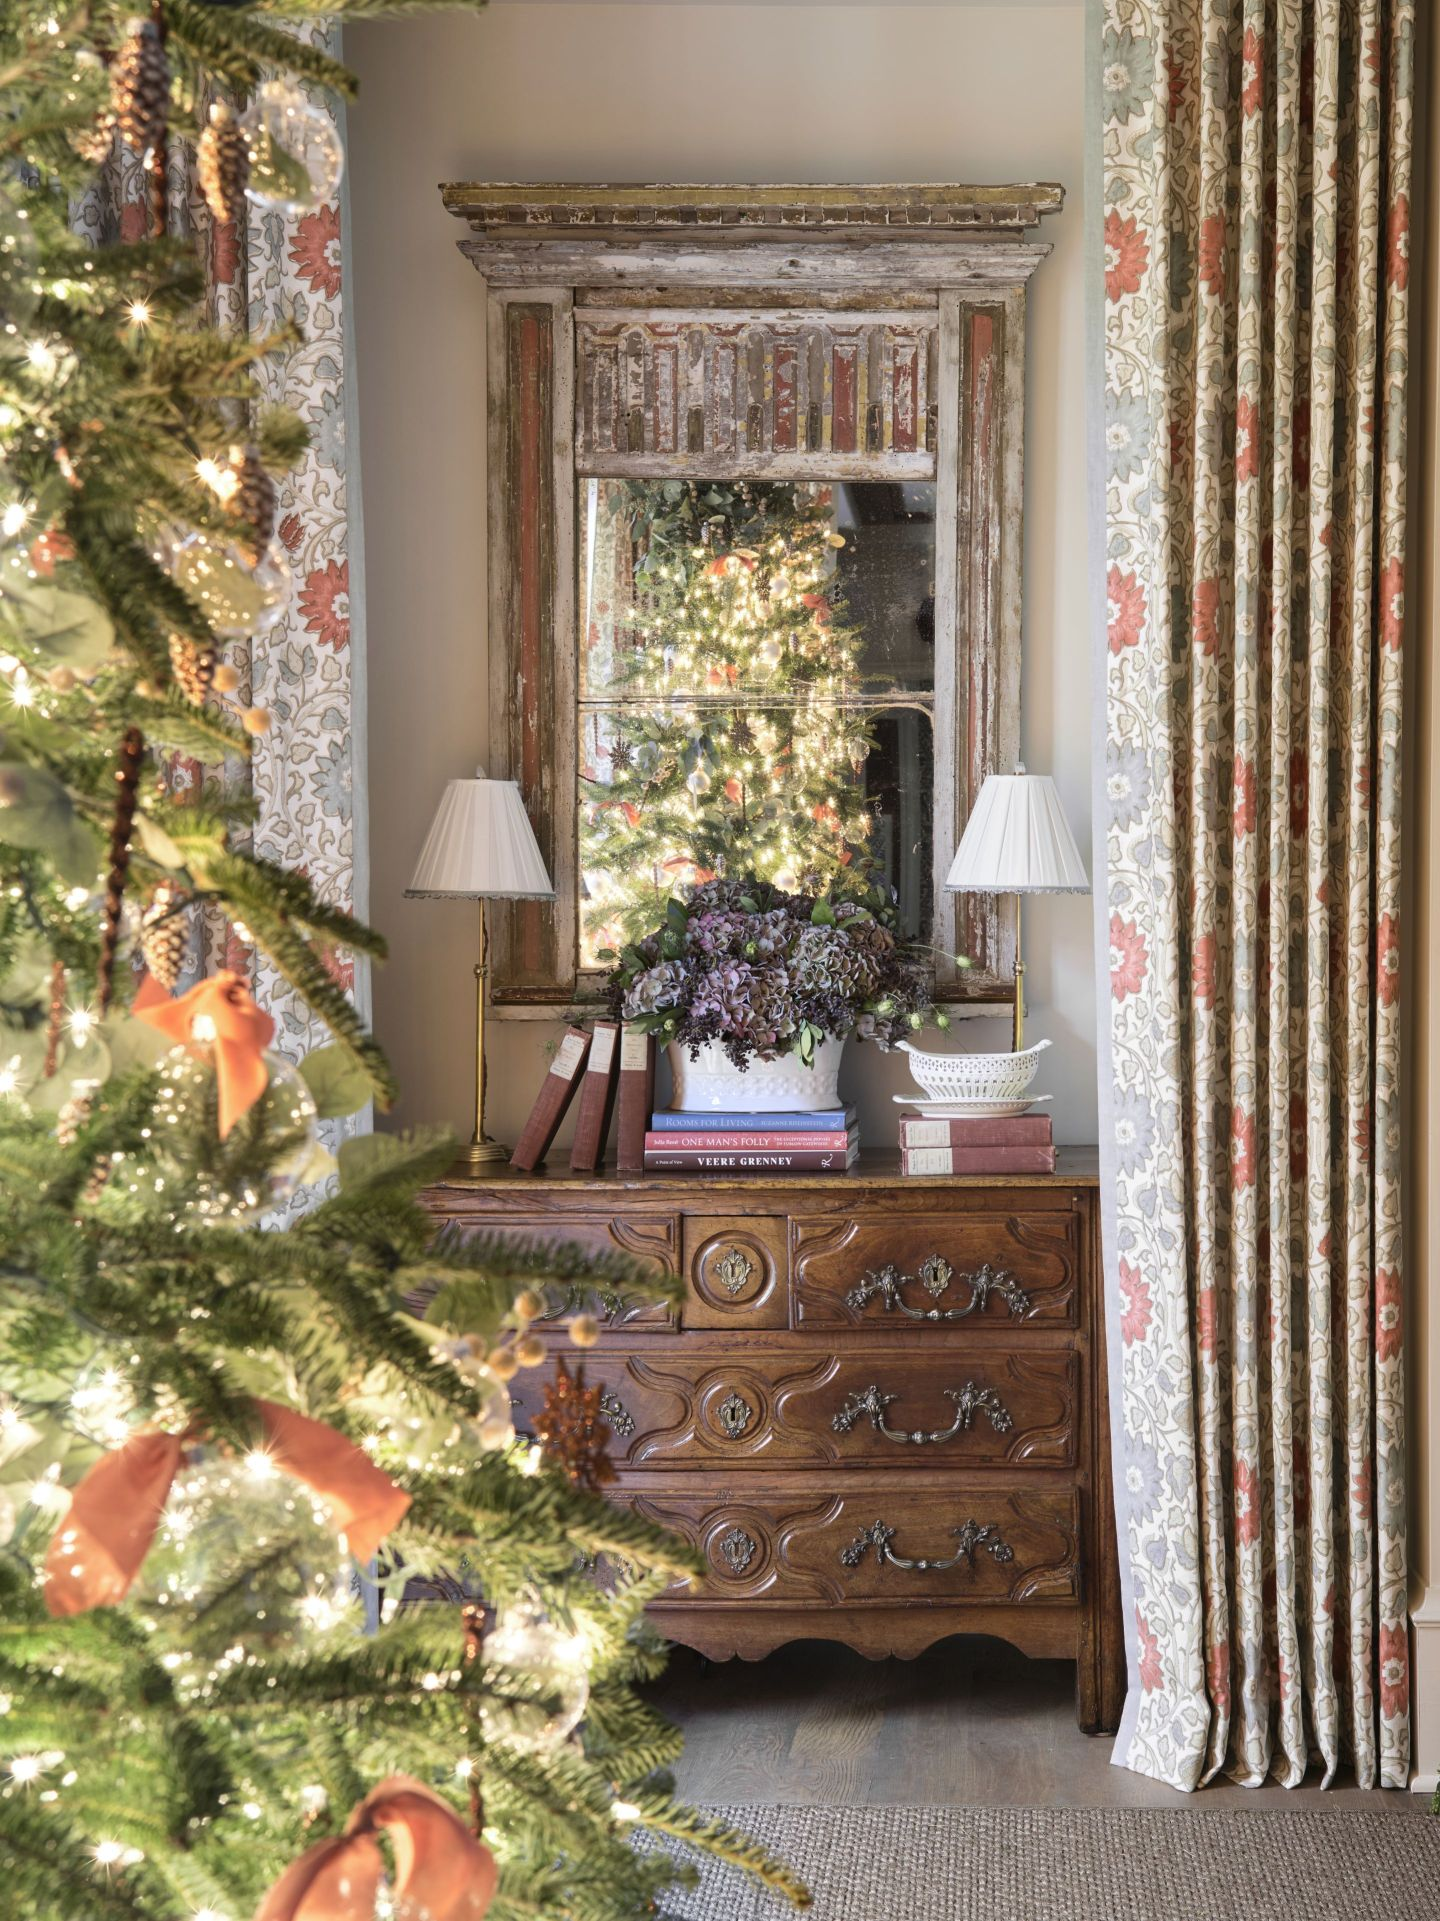 AHL_181113_showhouse32151_Lauren-DeLoach Home for the Holidays 2018: Atlanta, GA Style